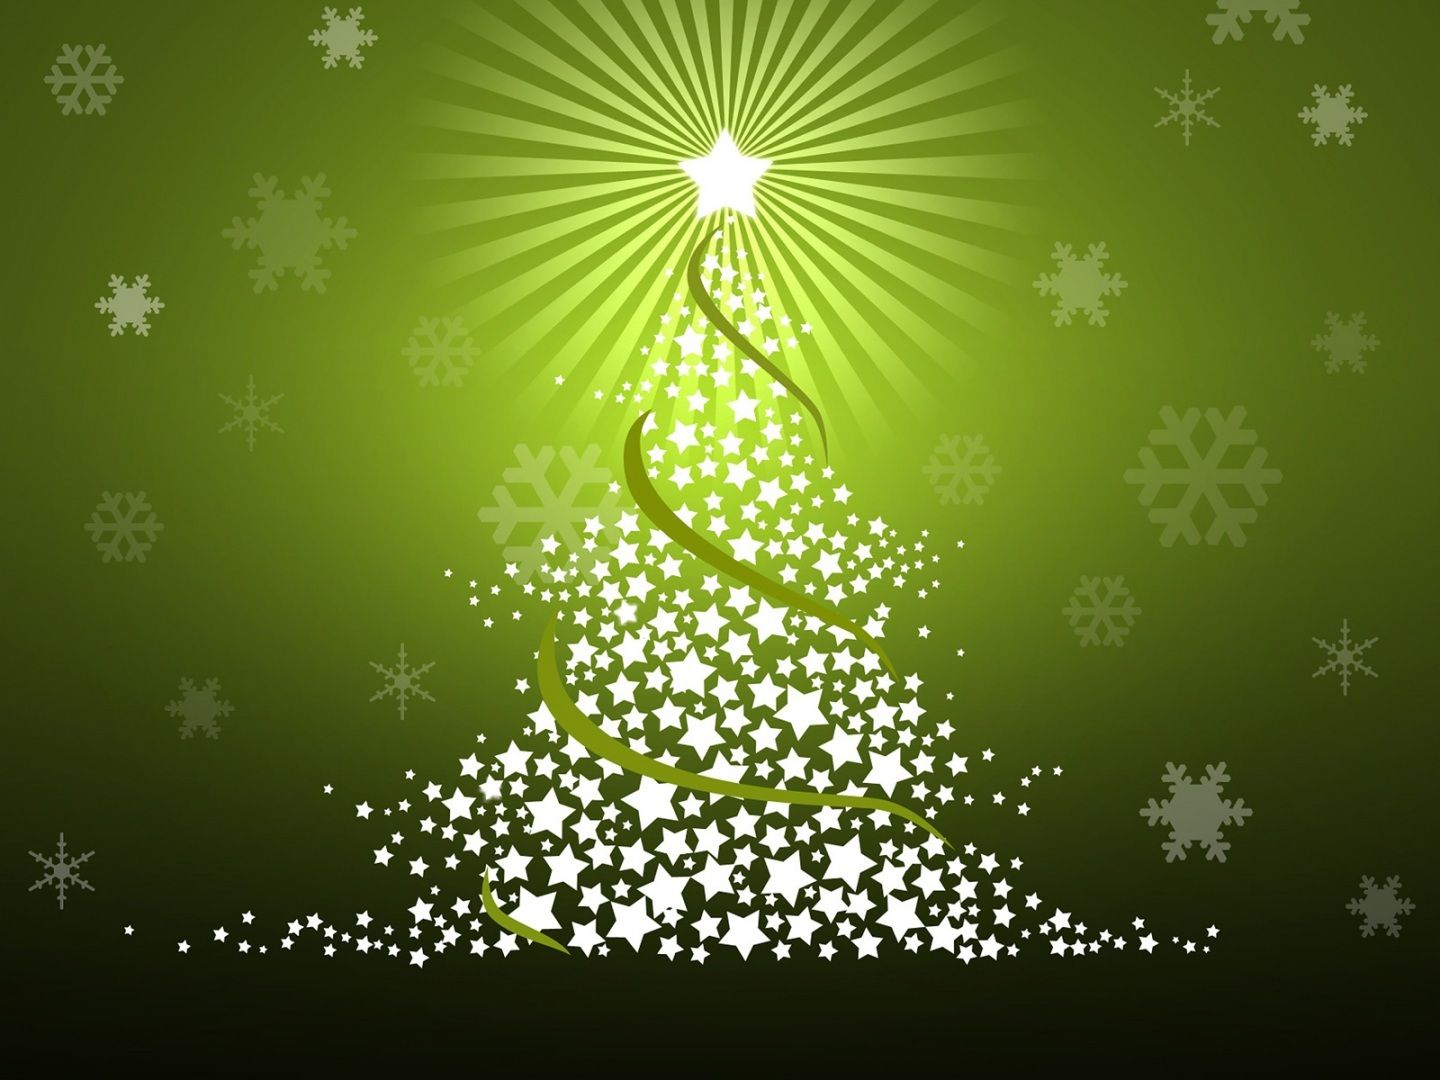 Christmas Live Wallpaper Free Android Apps on Google Play 1440×1080 ...